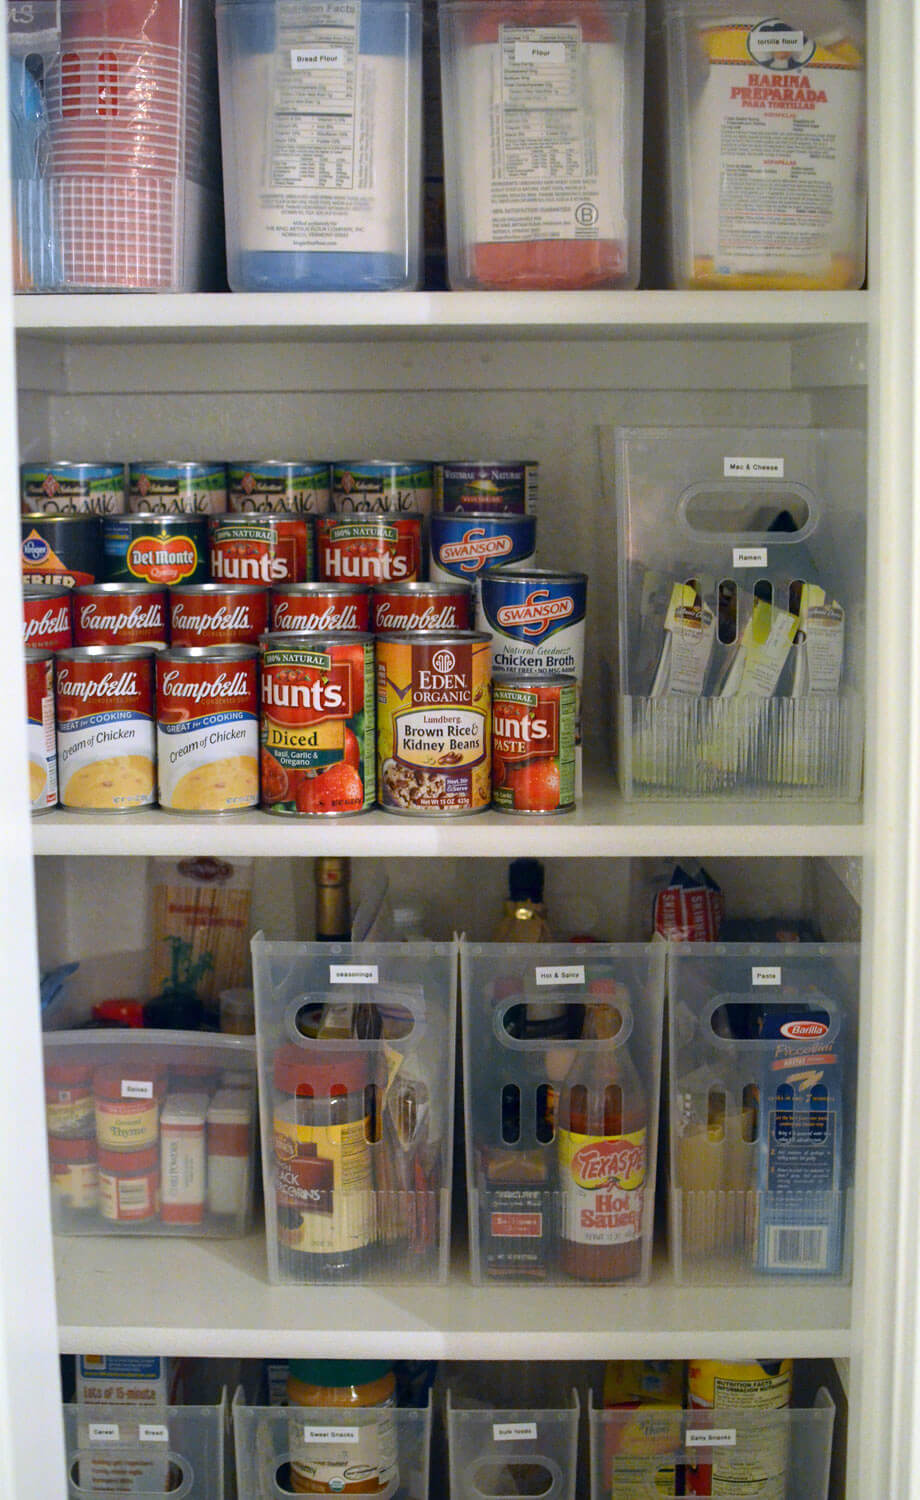 Labeling Can be Key to Maintaining Organization